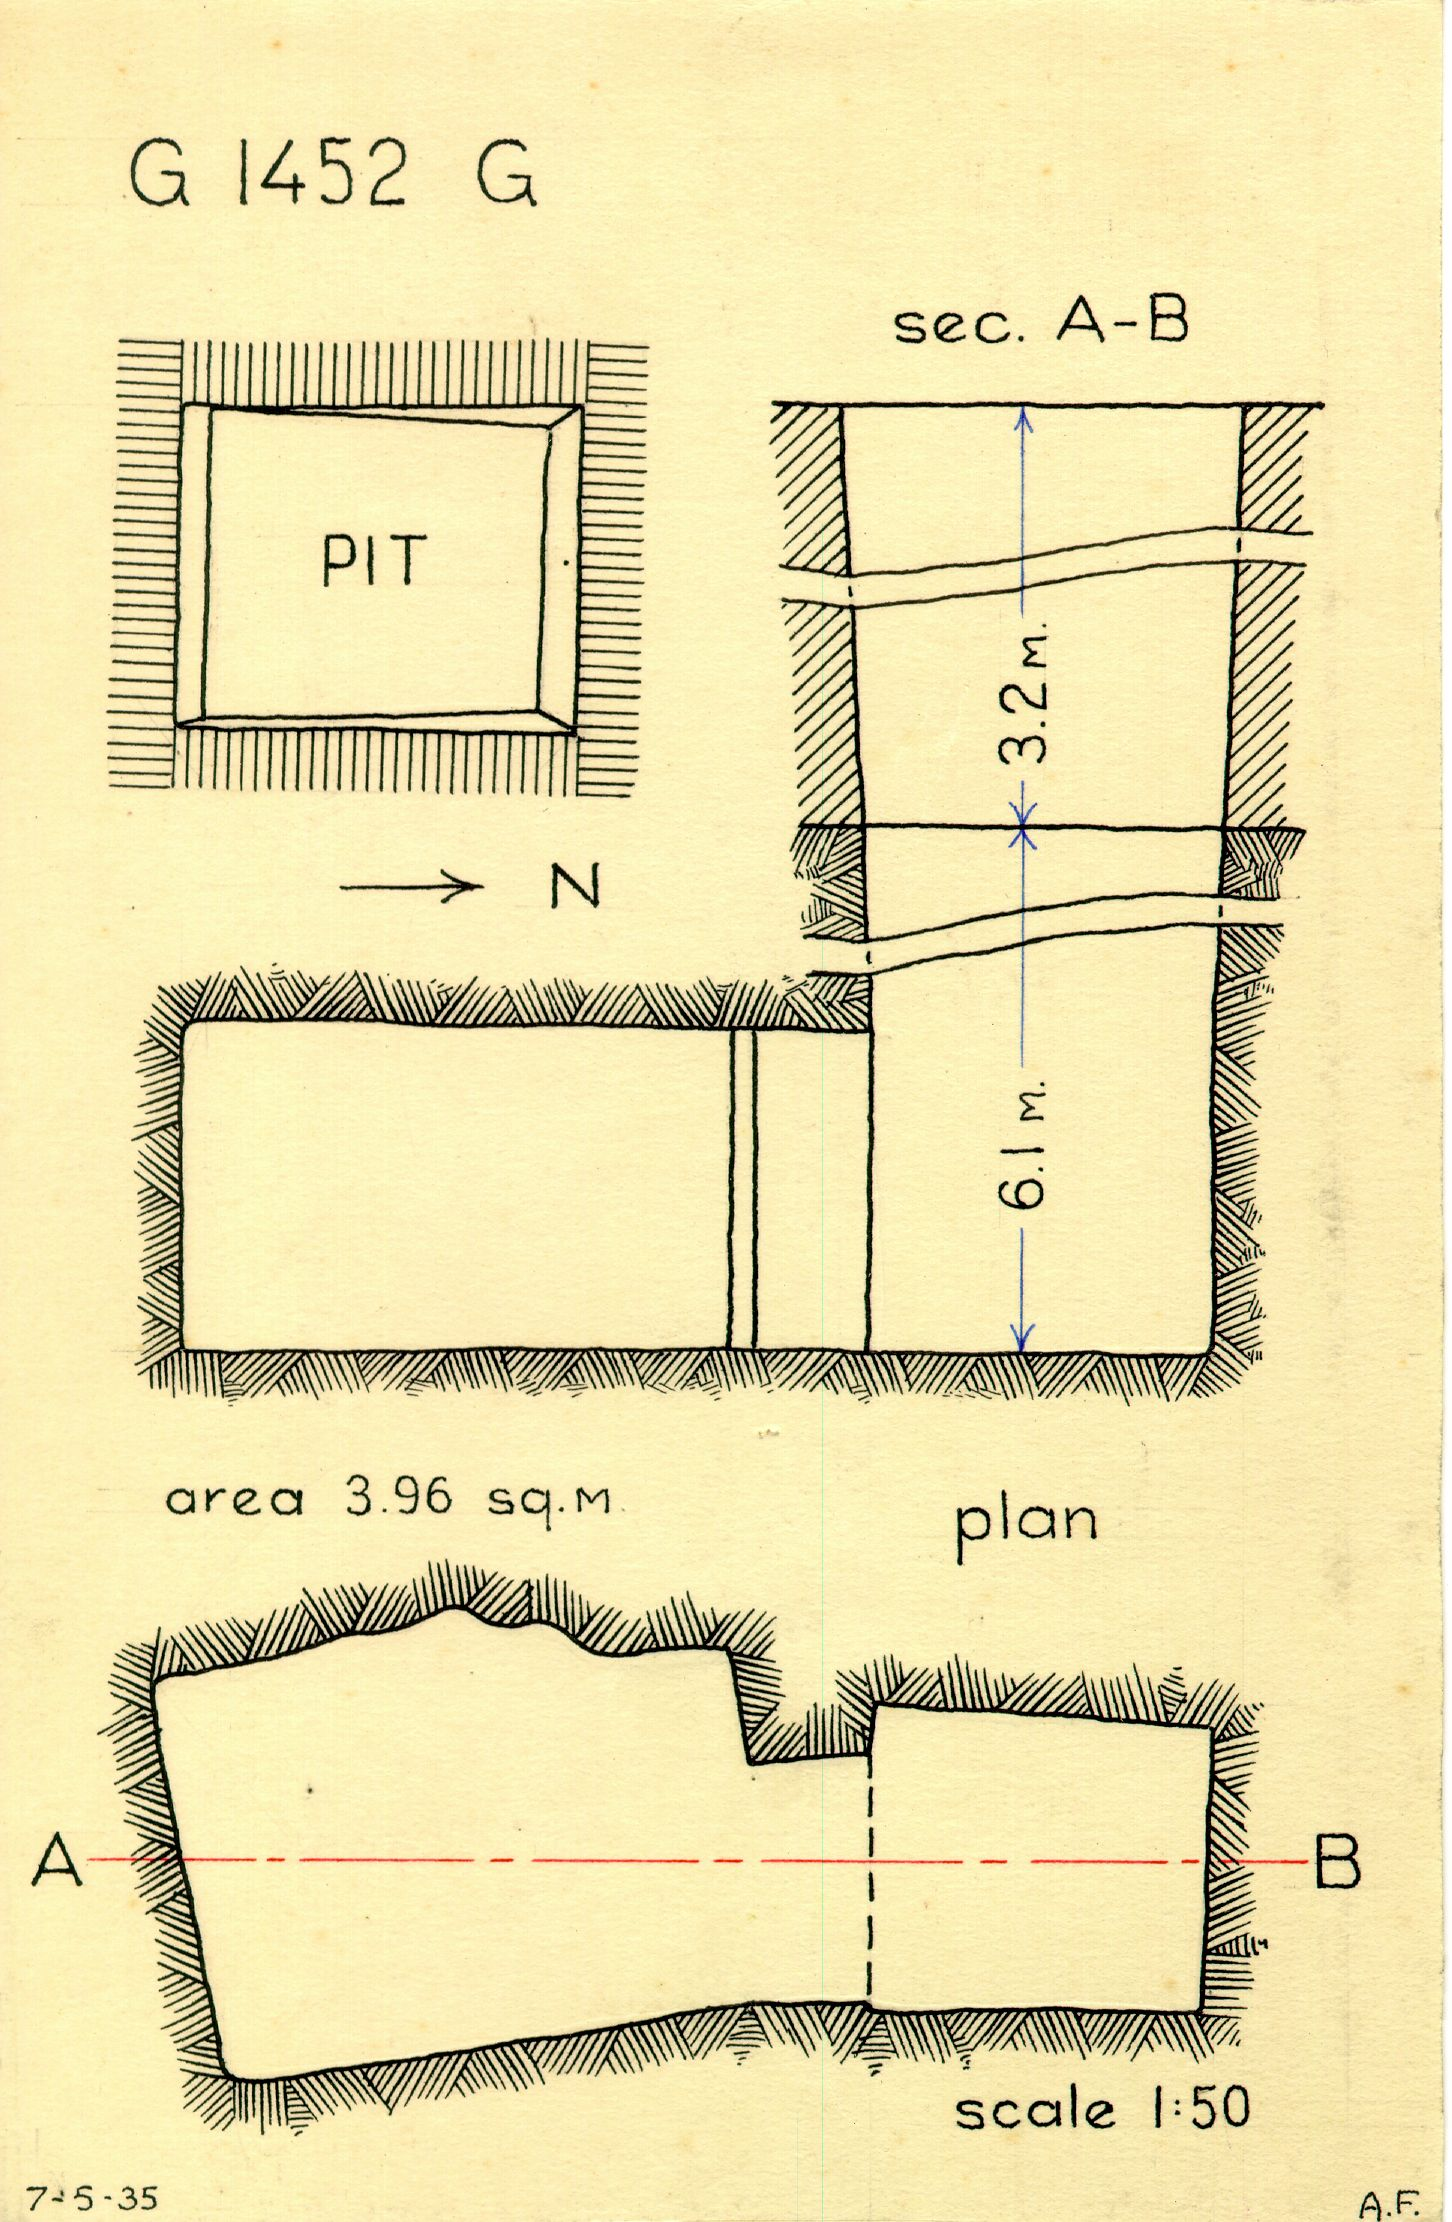 Maps and plans: G 1452+1453: G 1452, Shaft G